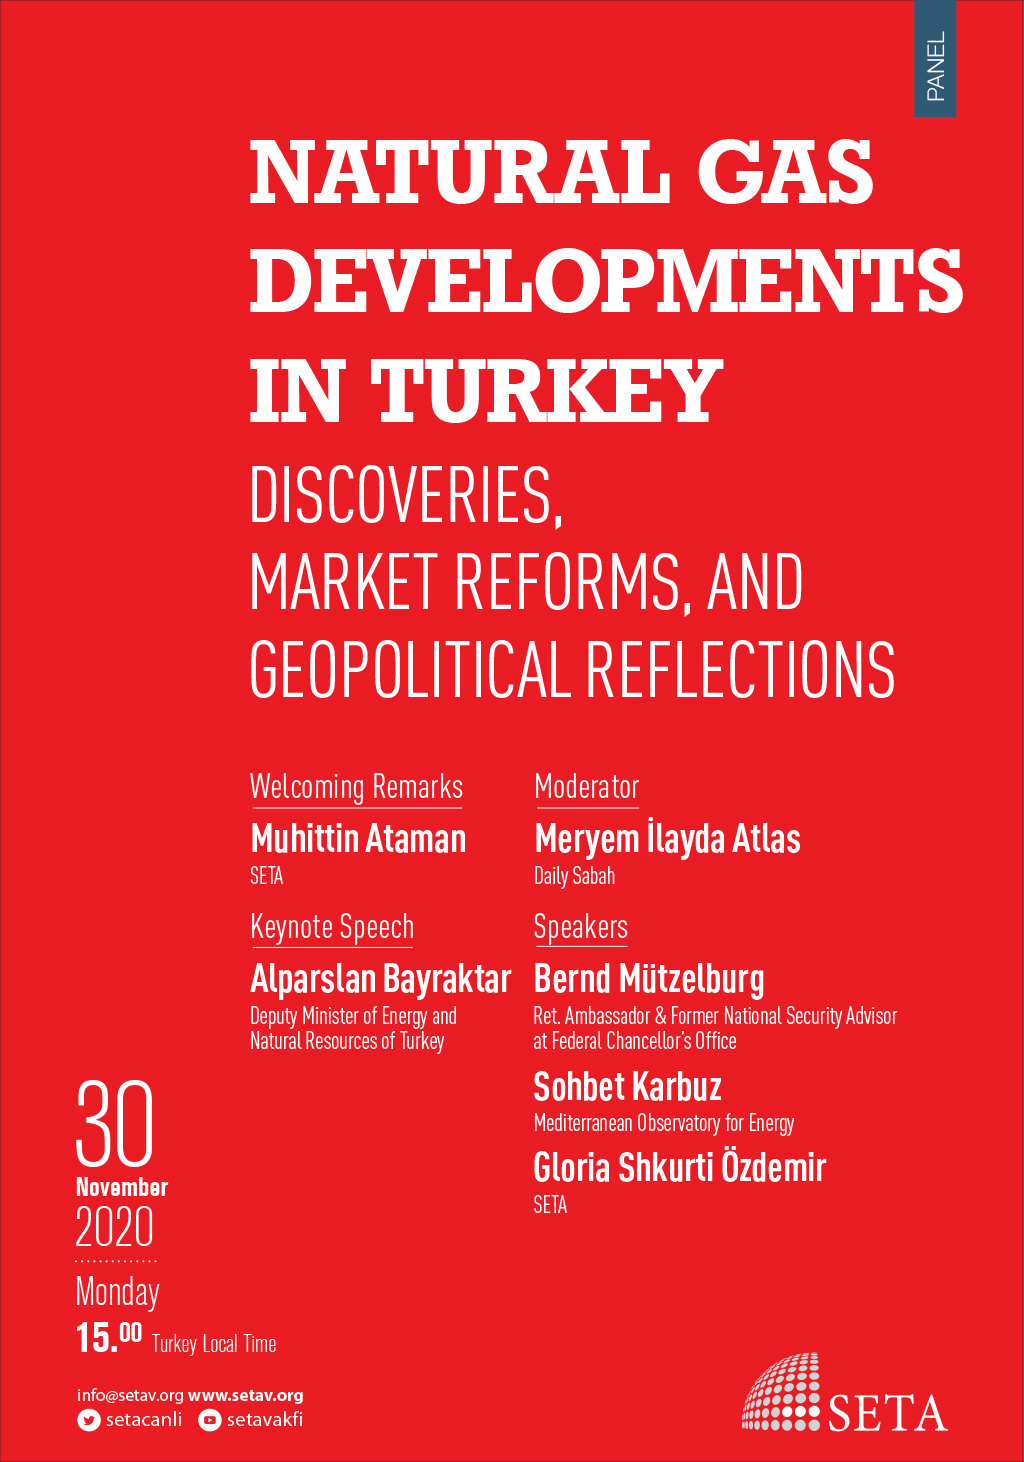 Web Panel: Natural Gas Developments in Turkey | Discoveries, Market Reforms and Geopolitical Reflections